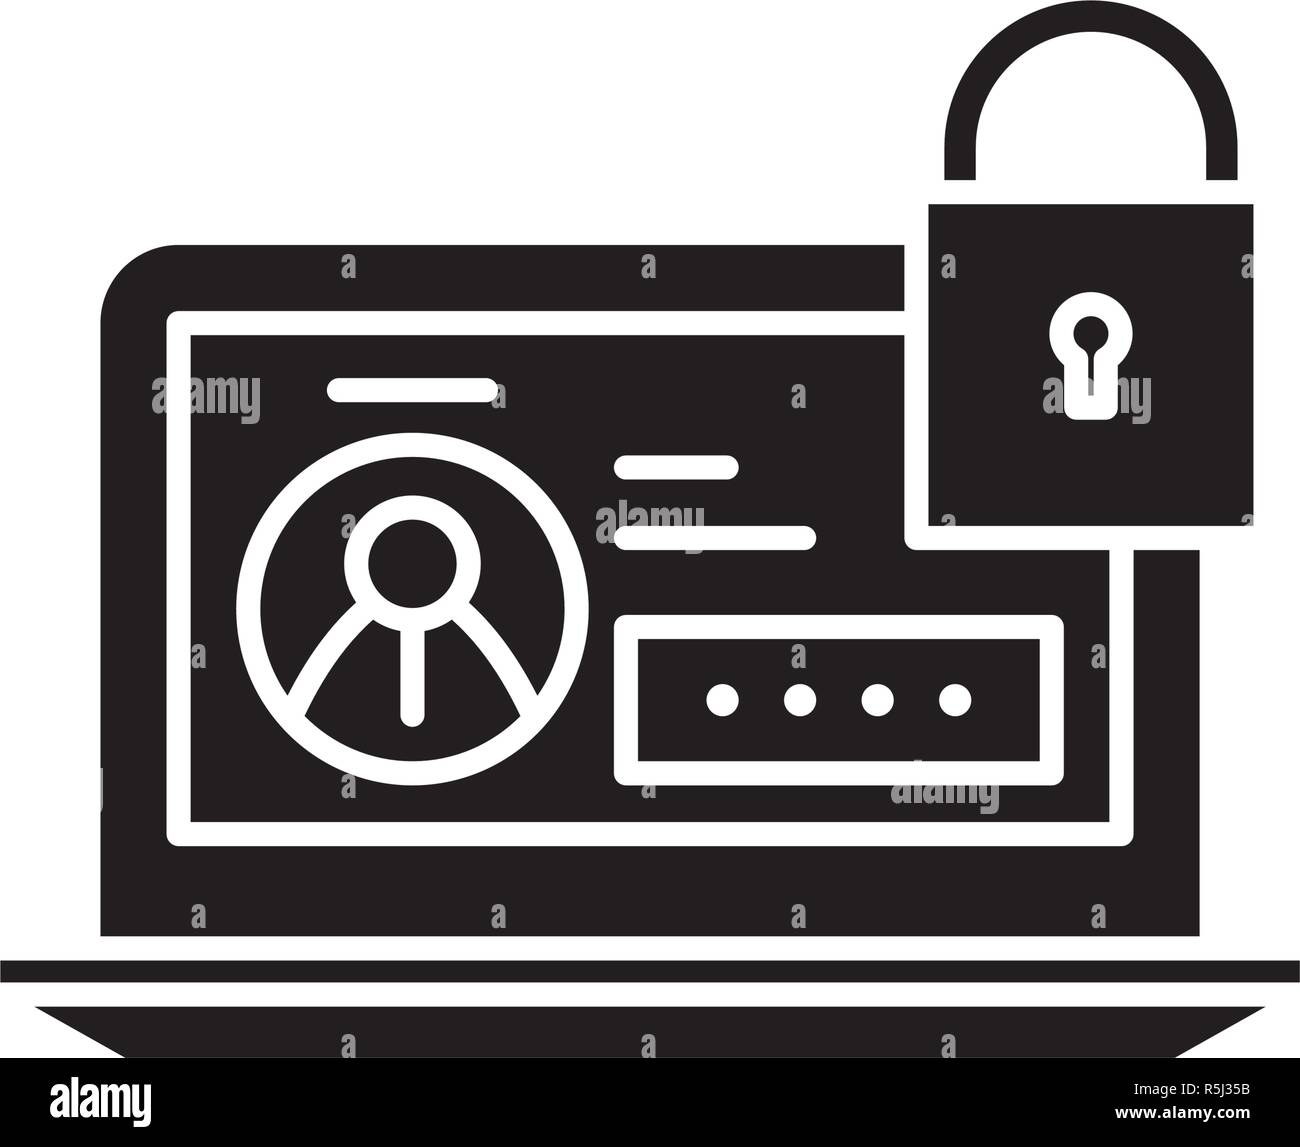 Secure data black icon, vector sign on isolated background. Secure data concept symbol, illustration  - Stock Image